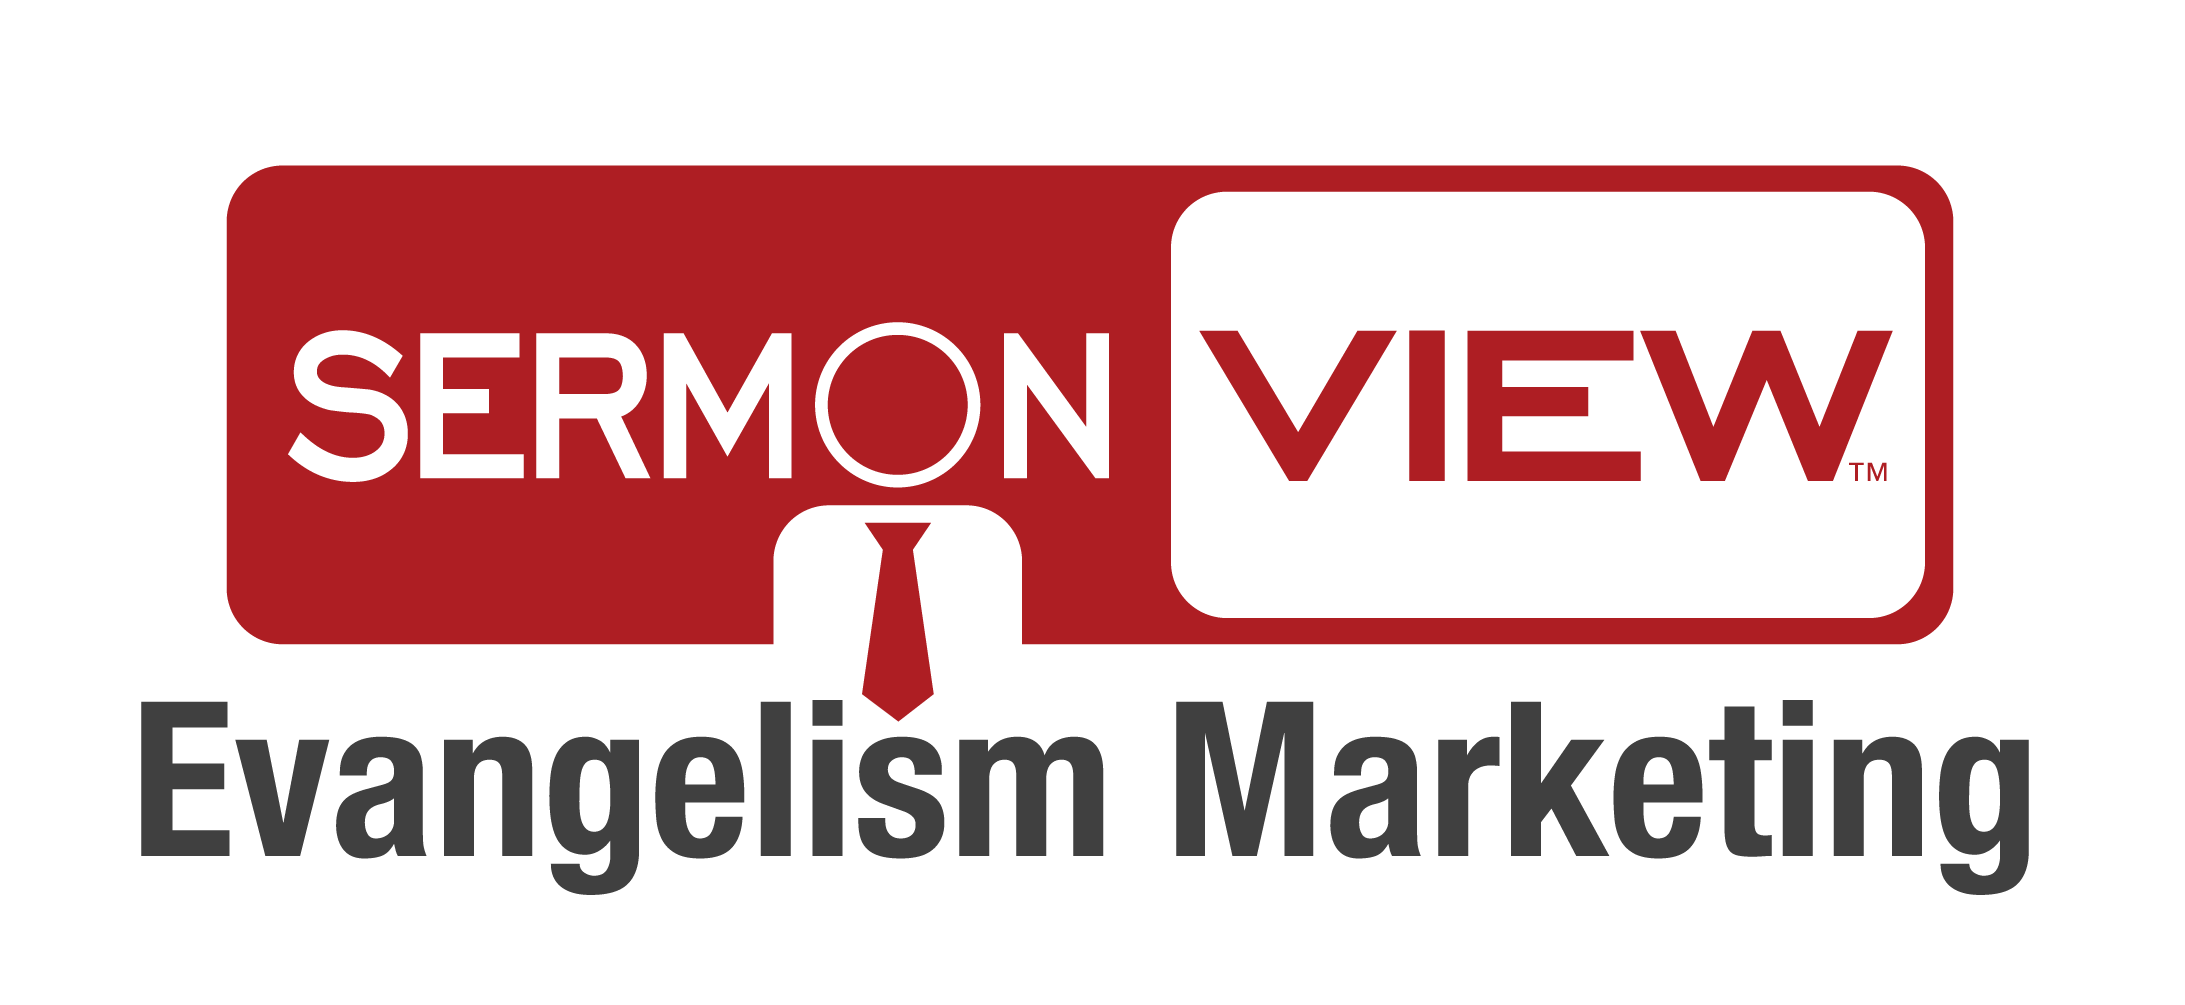 SermonView Evangelism Marketing